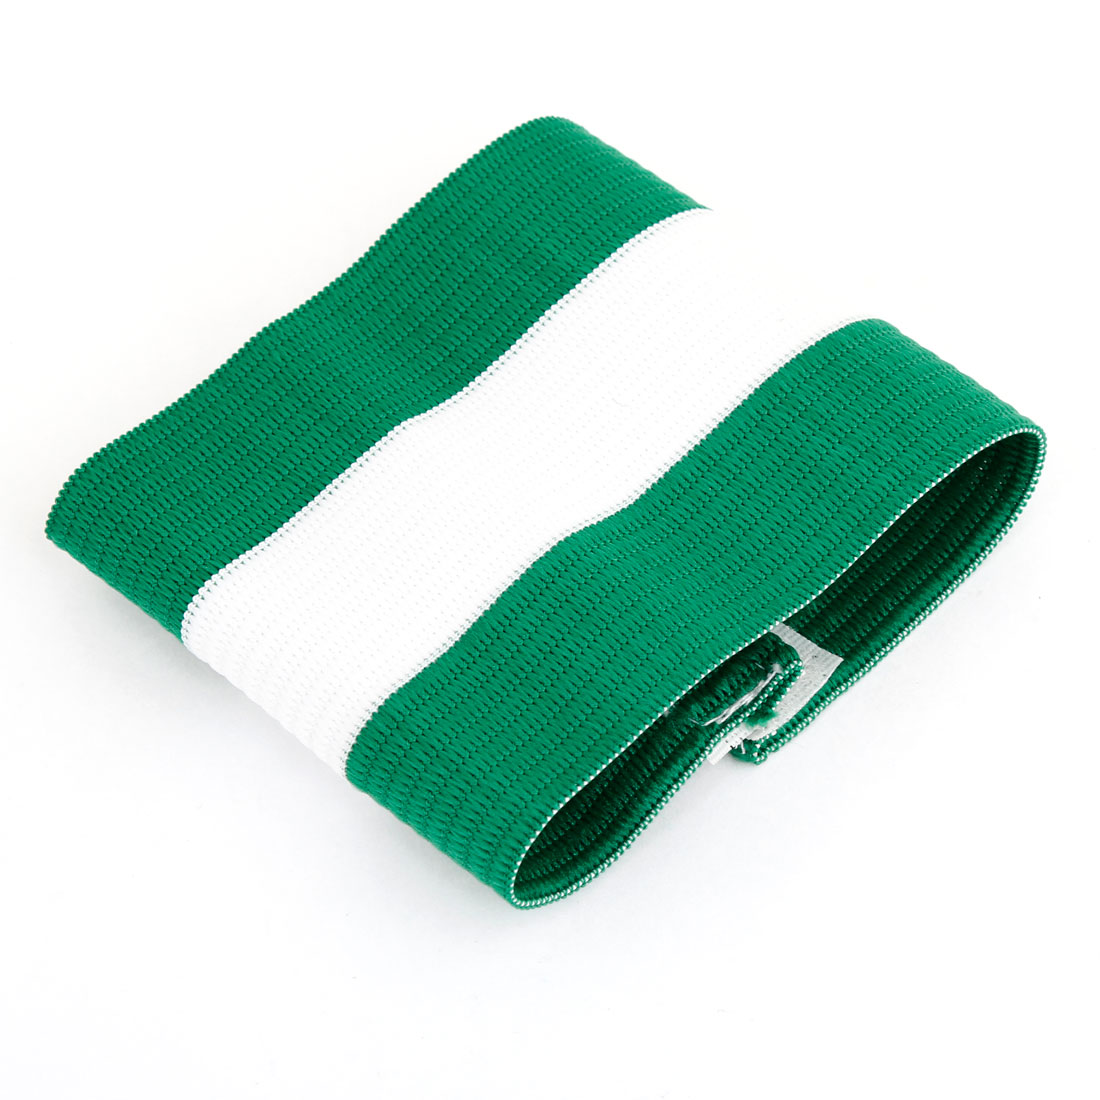 Outdoor White Green Striped Nylon Stretchy Team Game Soccer Armband